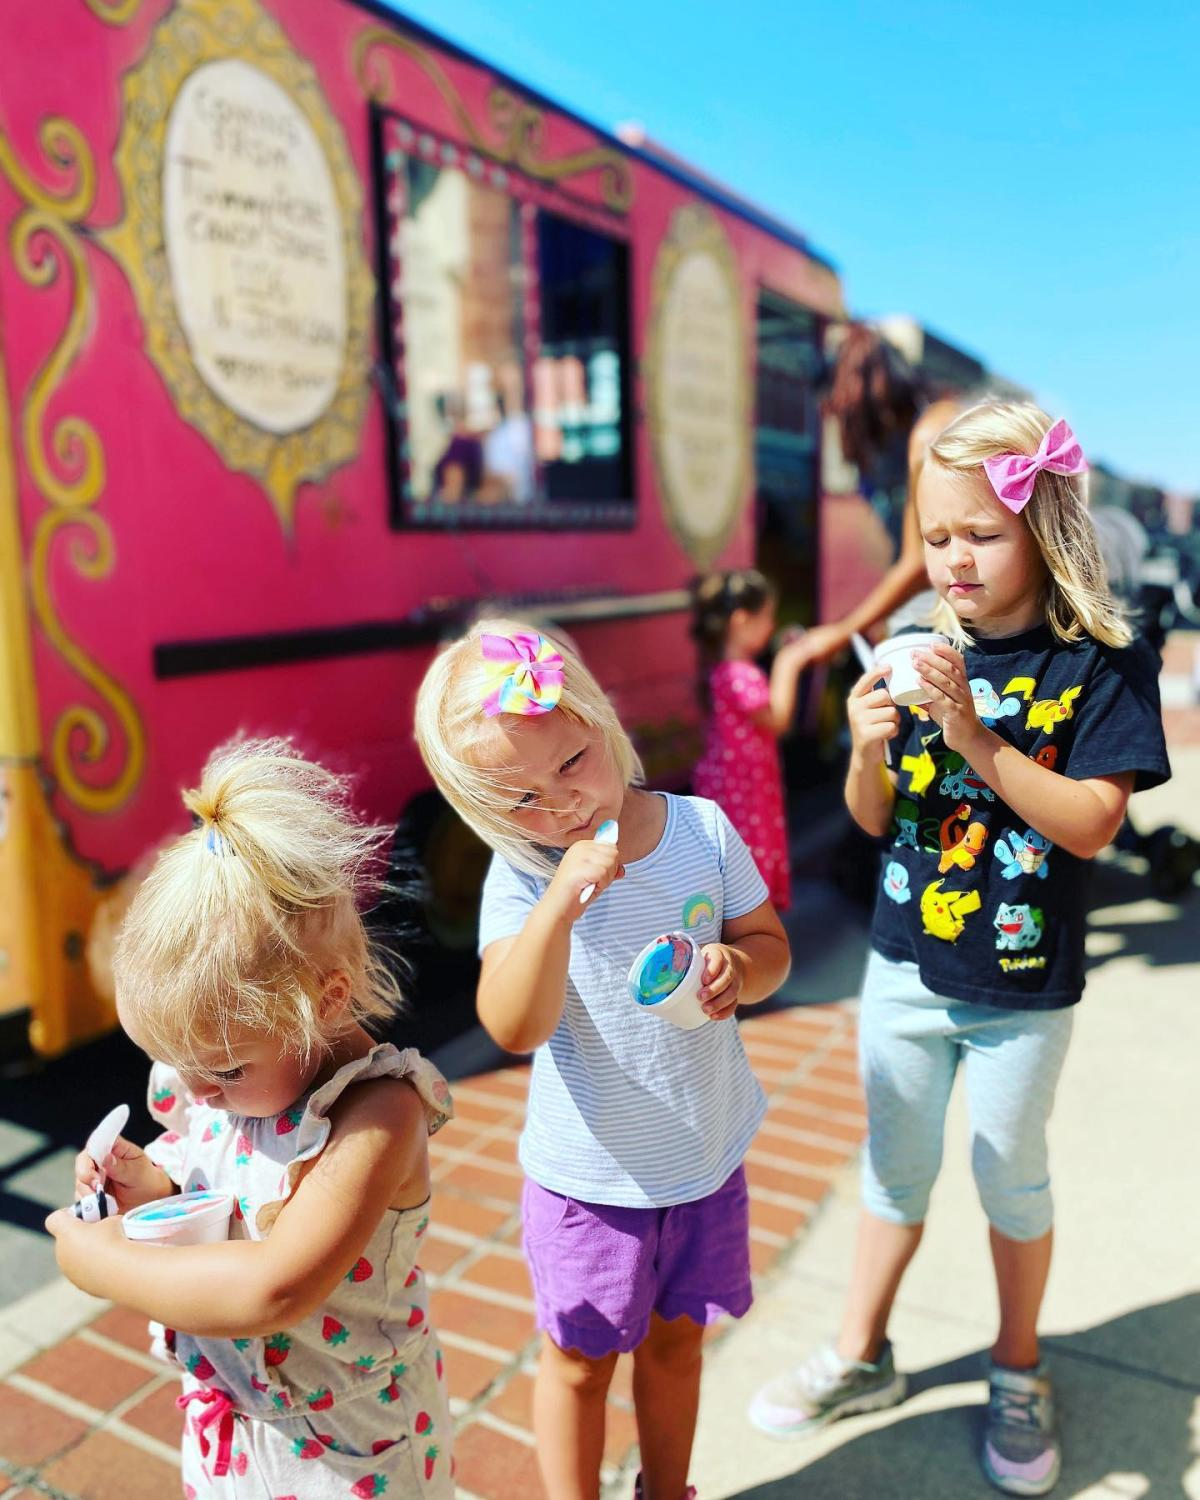 Little girls eating ice cream in front of a colorful ice cream truck by Tummy Ache Candy Store in Bay City